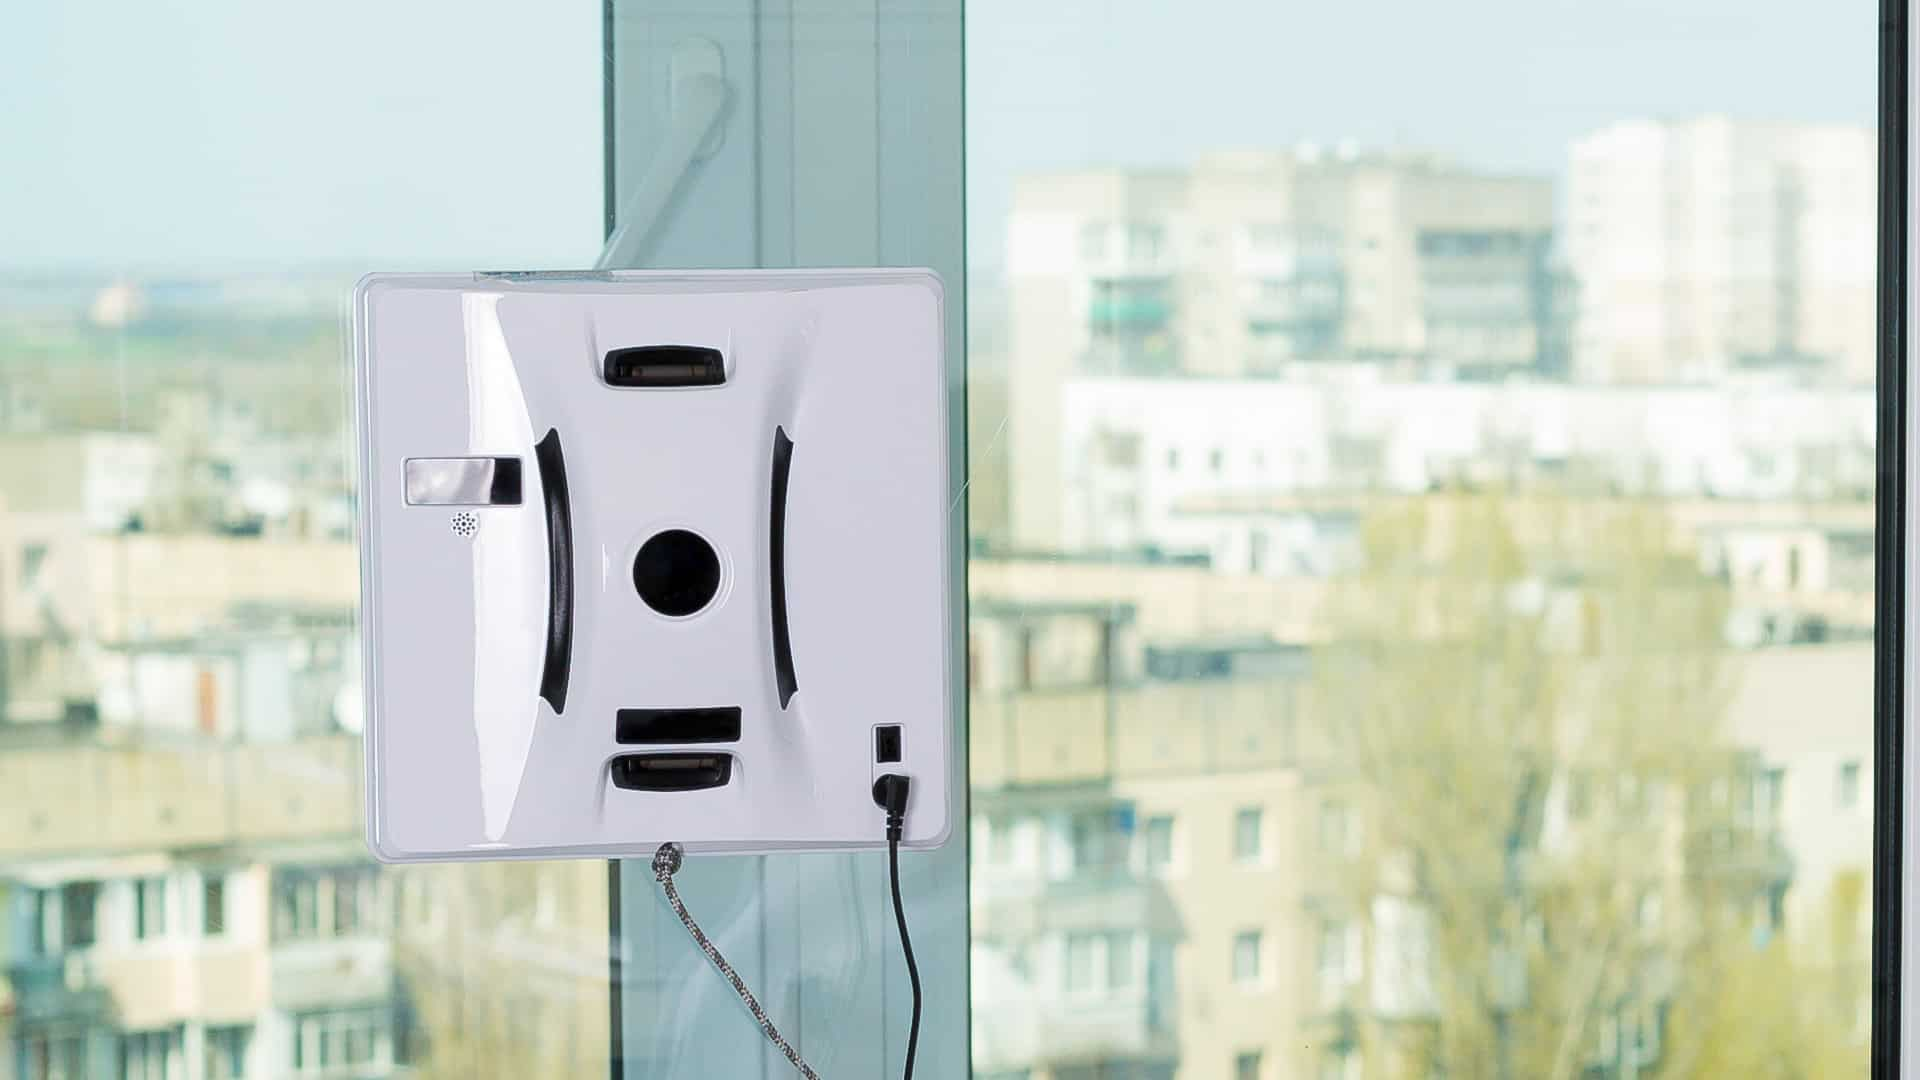 Best Robotic Window Cleaners 2020: Shopping Guide & Review